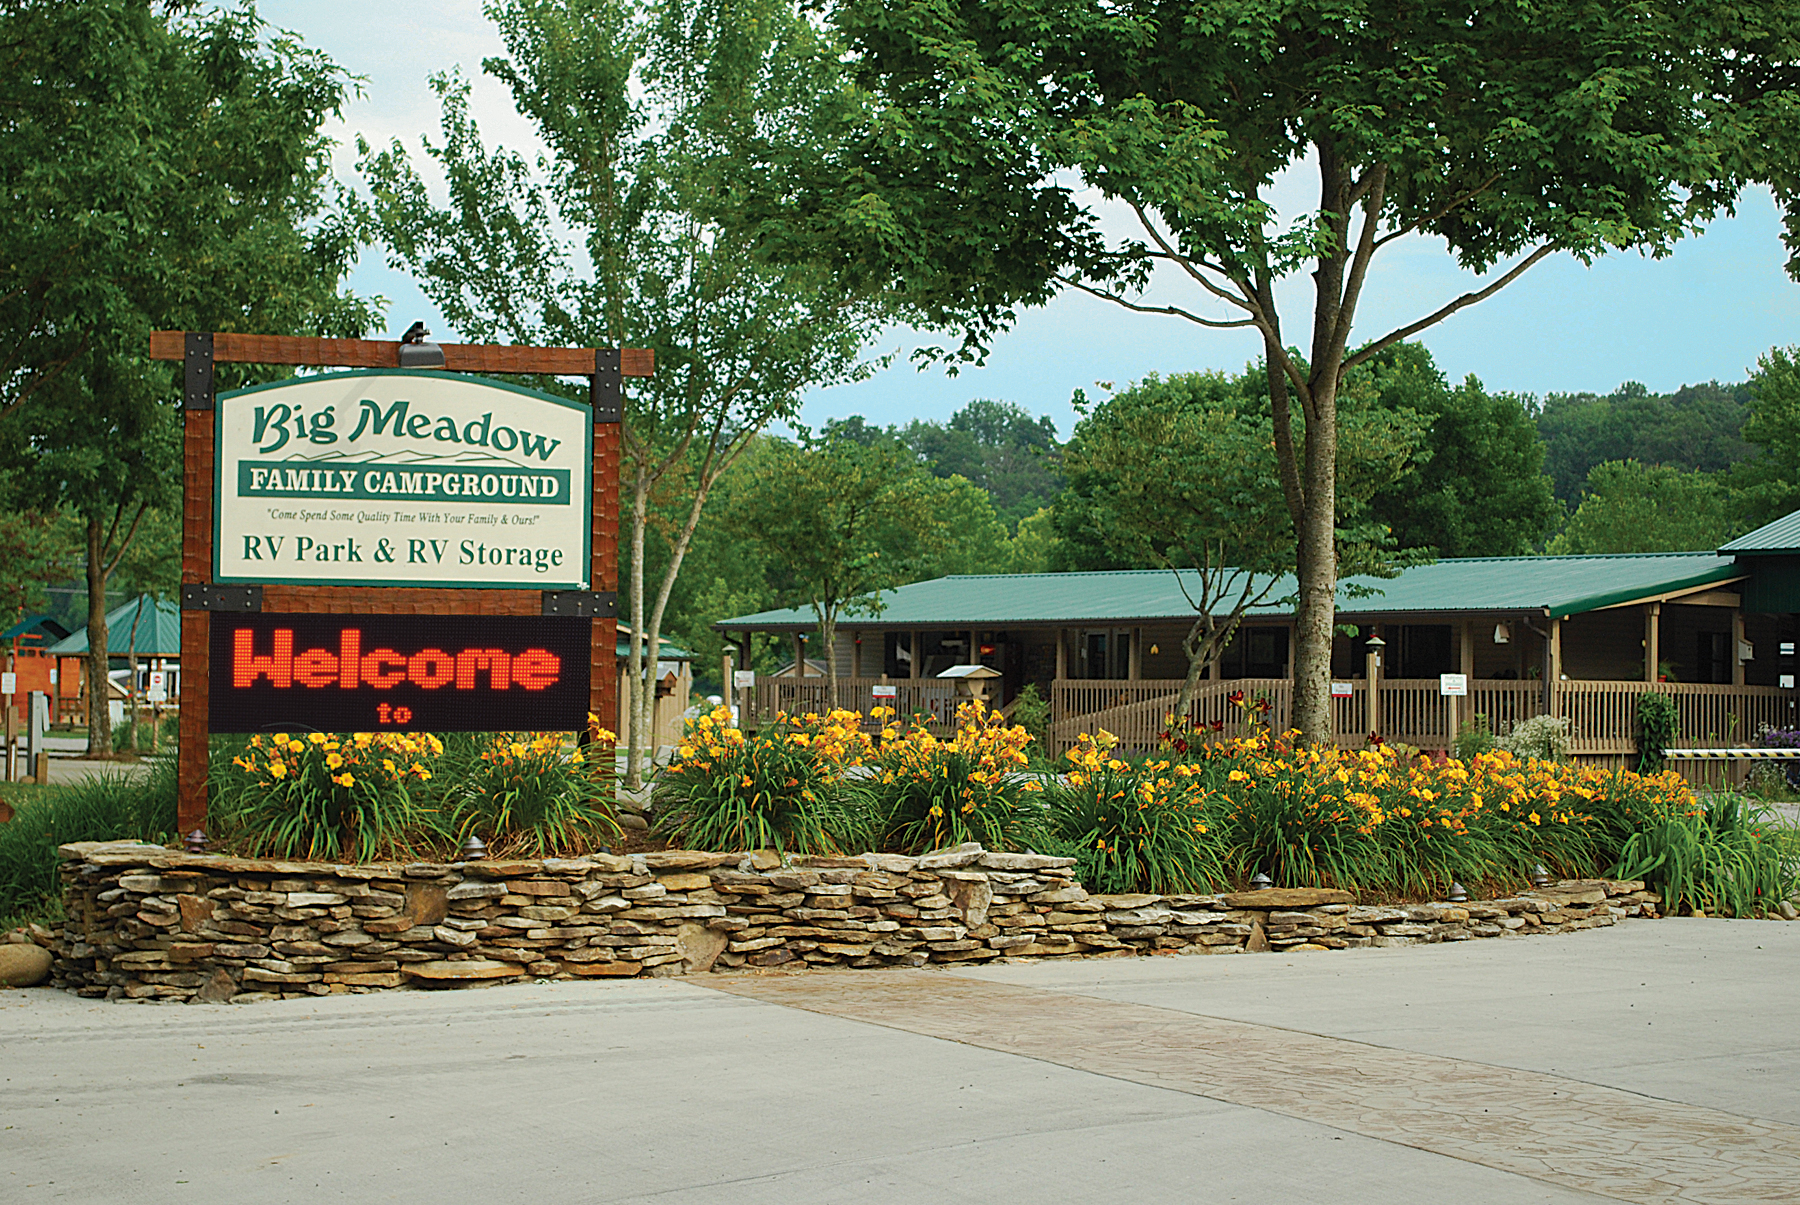 Welcome to Big Meadow!